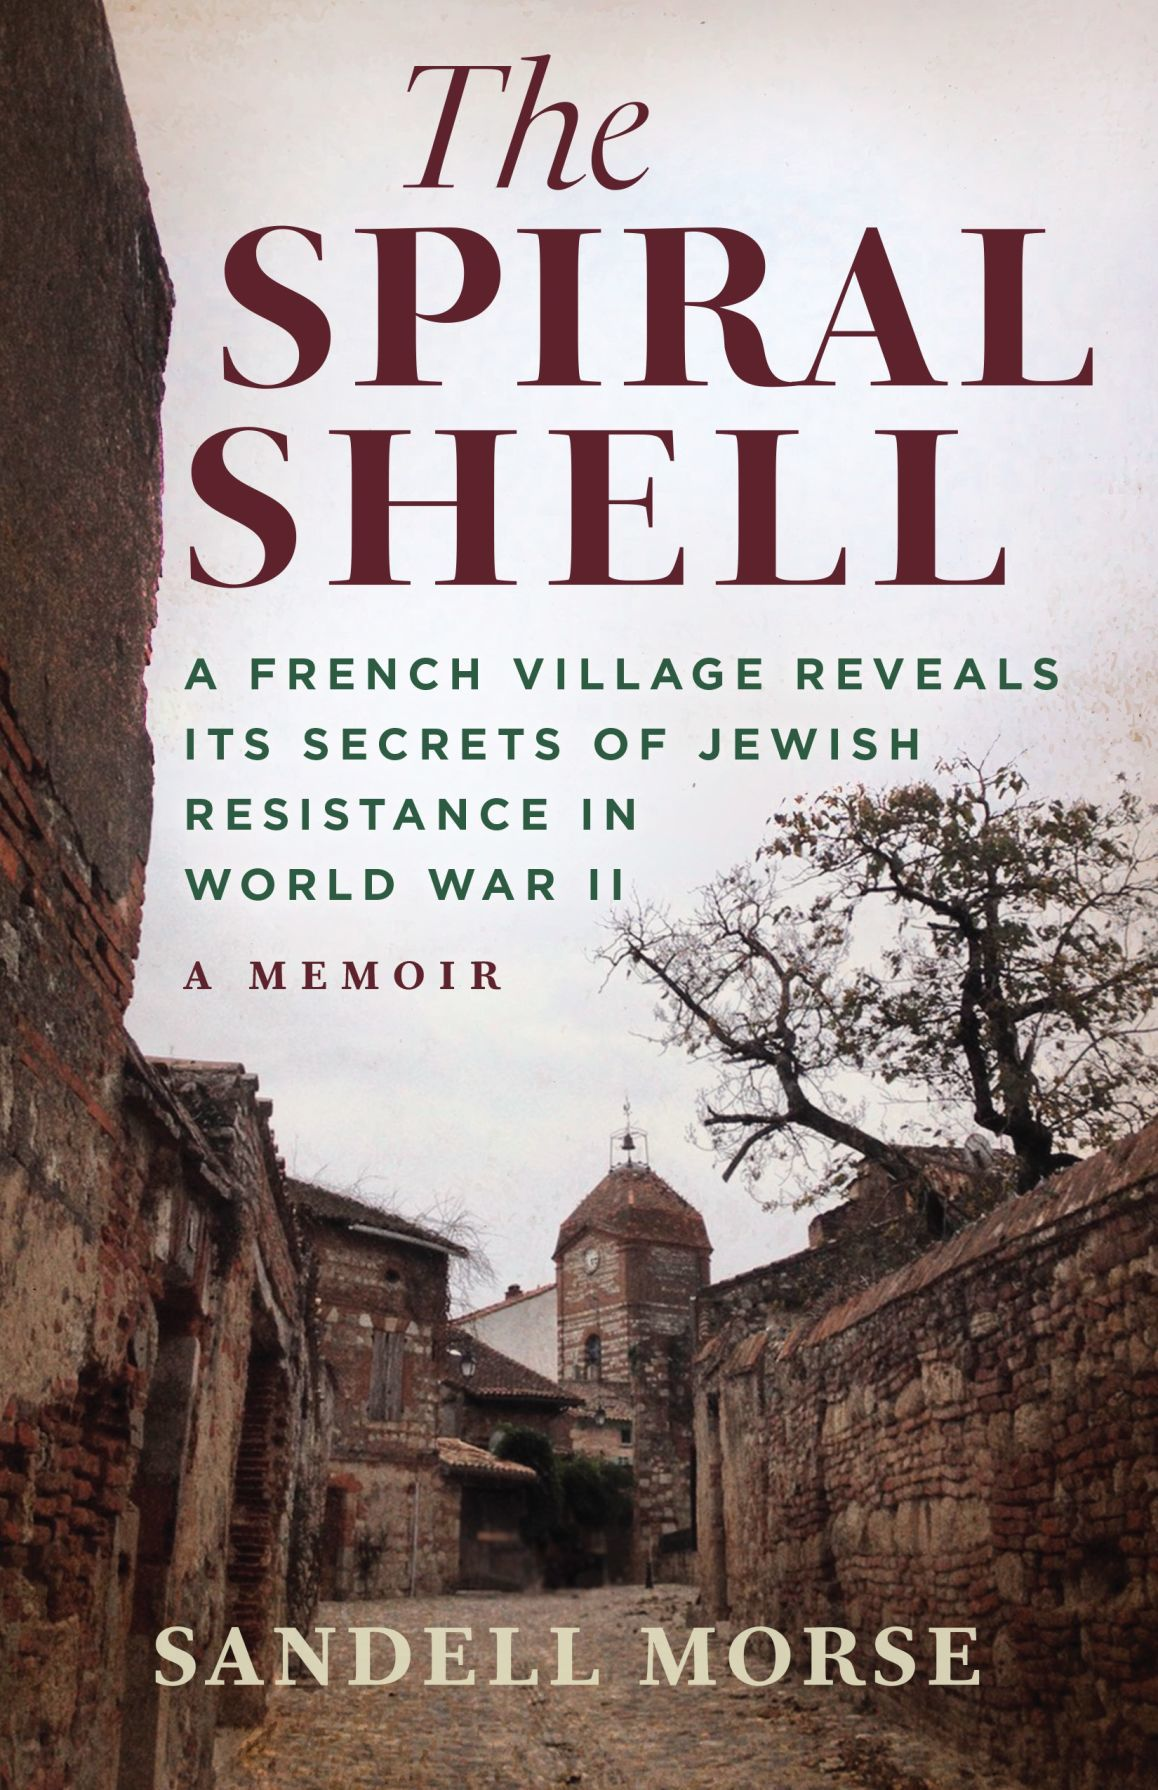 The Spiral Shell by Sandell Morse